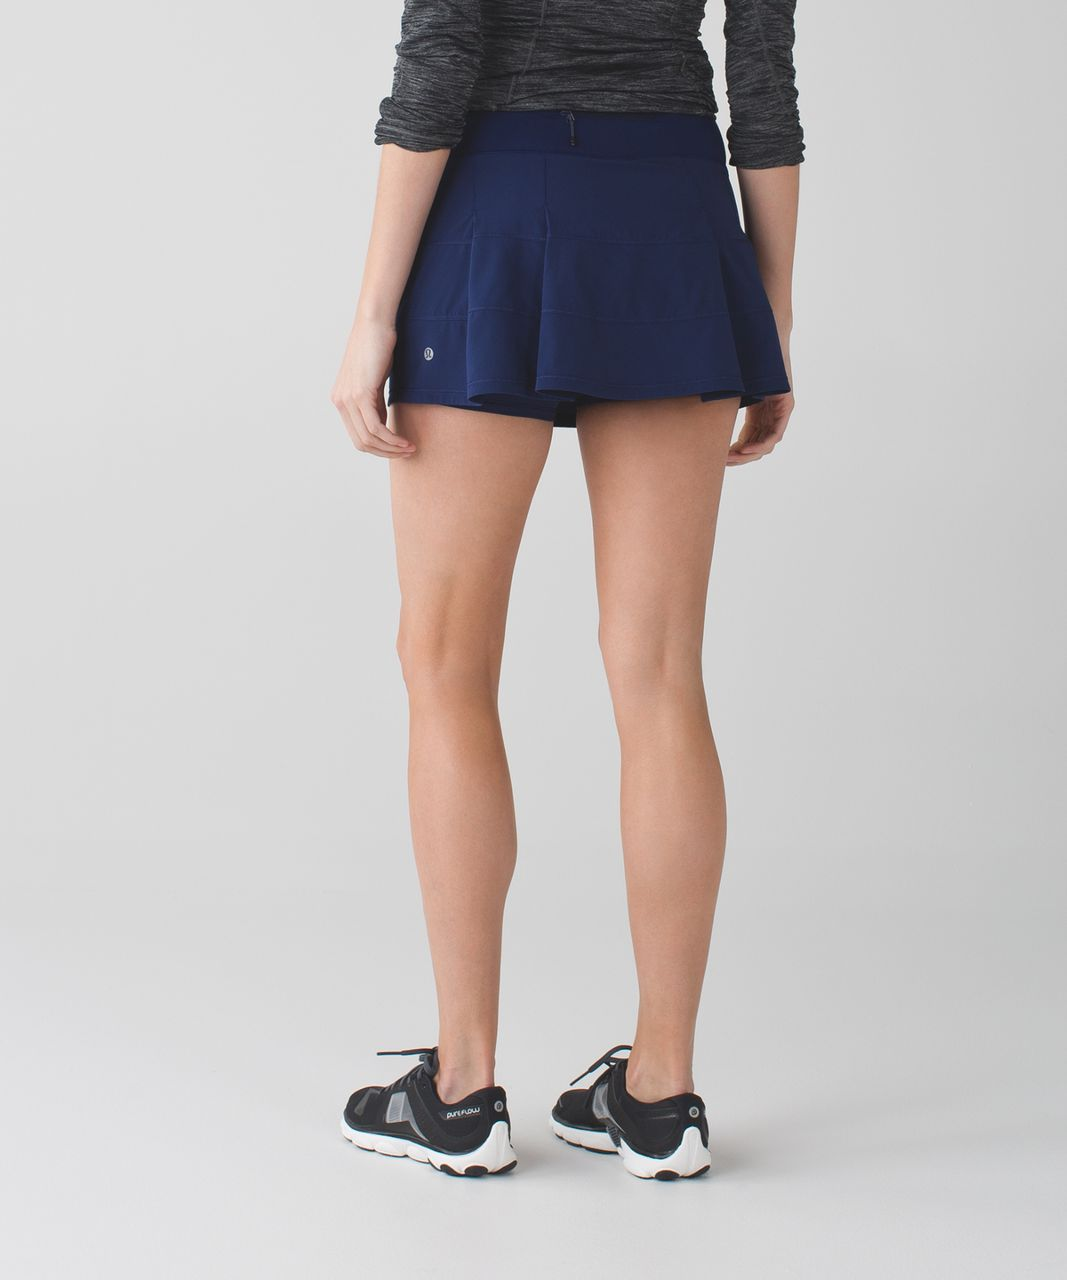 Lululemon Pace Rival Skirt II (Regular) *4-way Stretch - Hero Blue / Dandy Digie Porcelaine Black